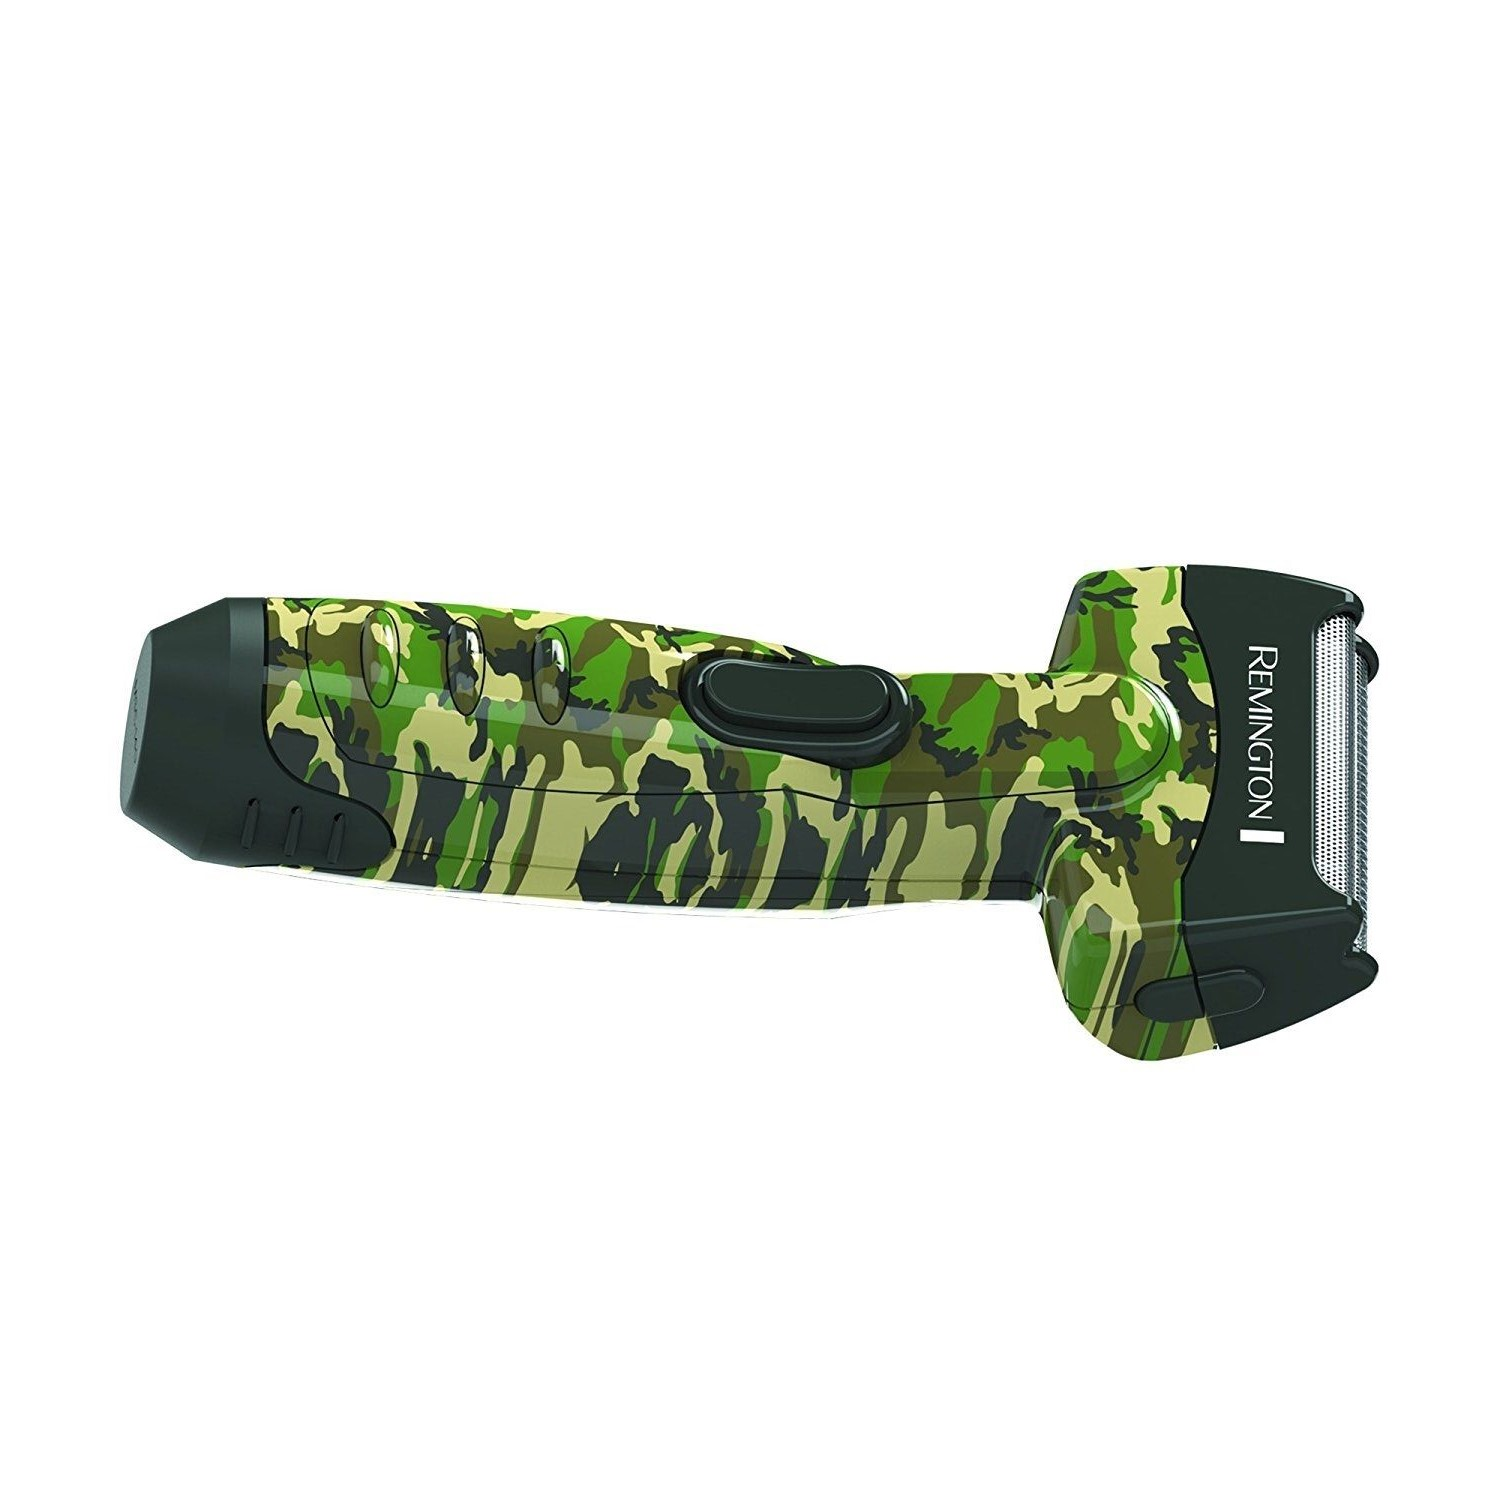 New SAF Army Shaver